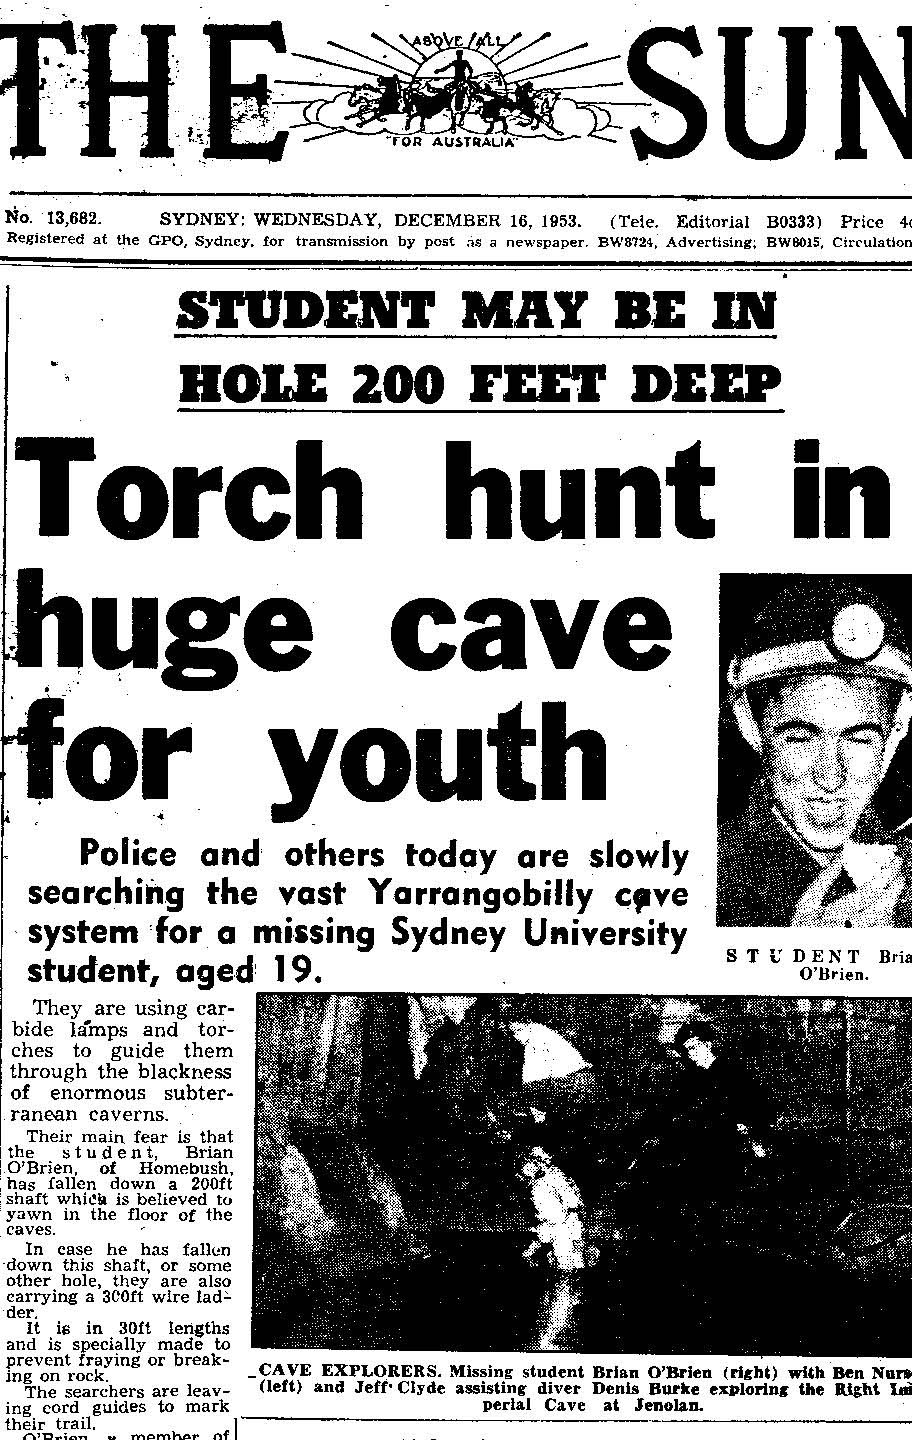 """Article from the December 15th 1953 issue of """"The Sun"""" """"Torch Hunt in Huge Cave for Youth""""."""